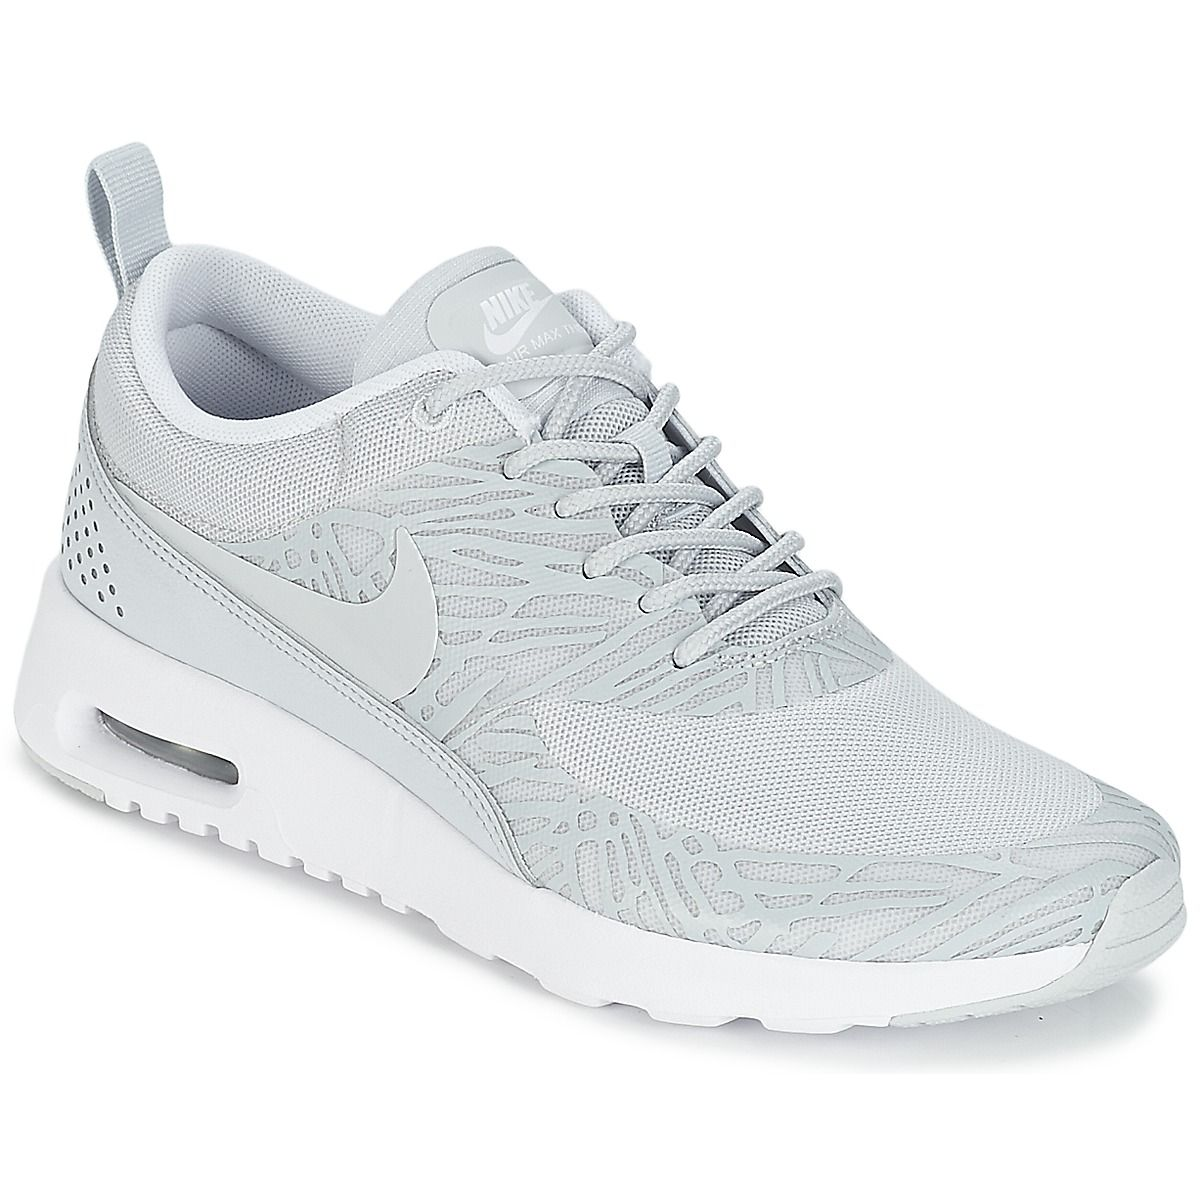 Shoes1 in 2019 | Nike air max, Nike air, Nike